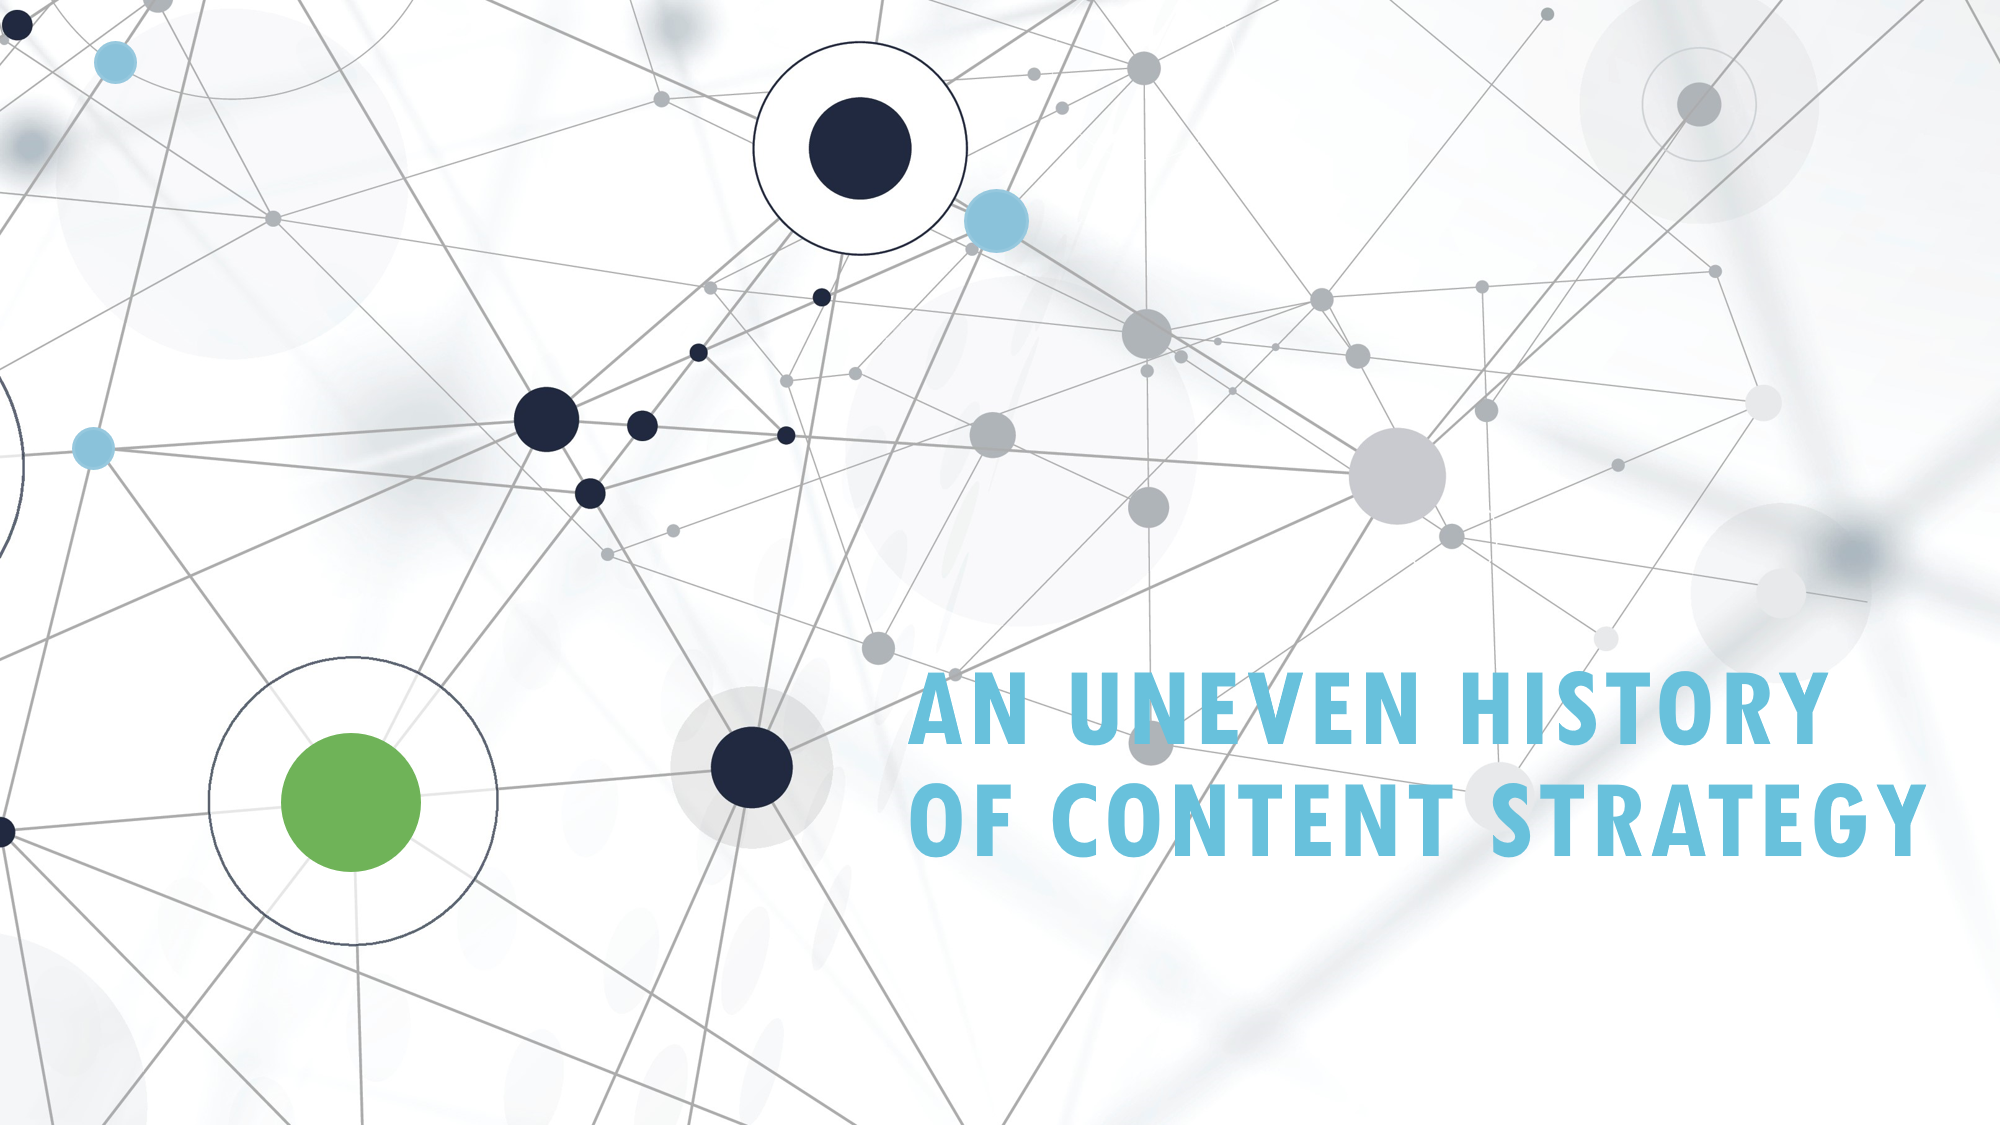 Content Strategy: An Uneven History